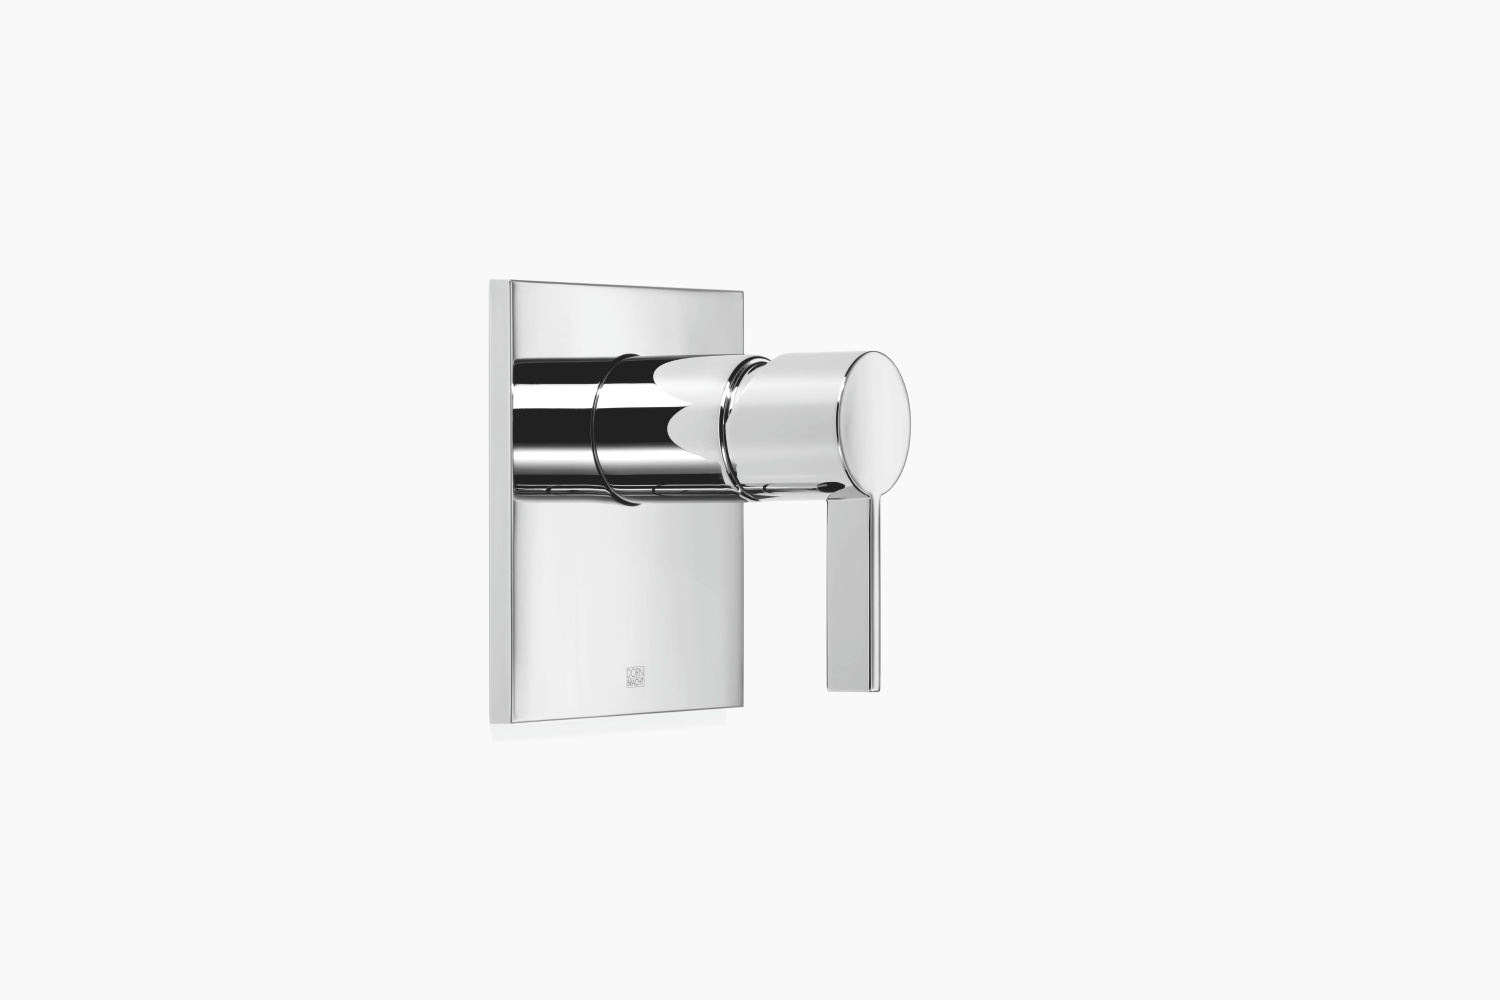 xSTREAM Concealed single-lever mixer without diverter - polished chrome